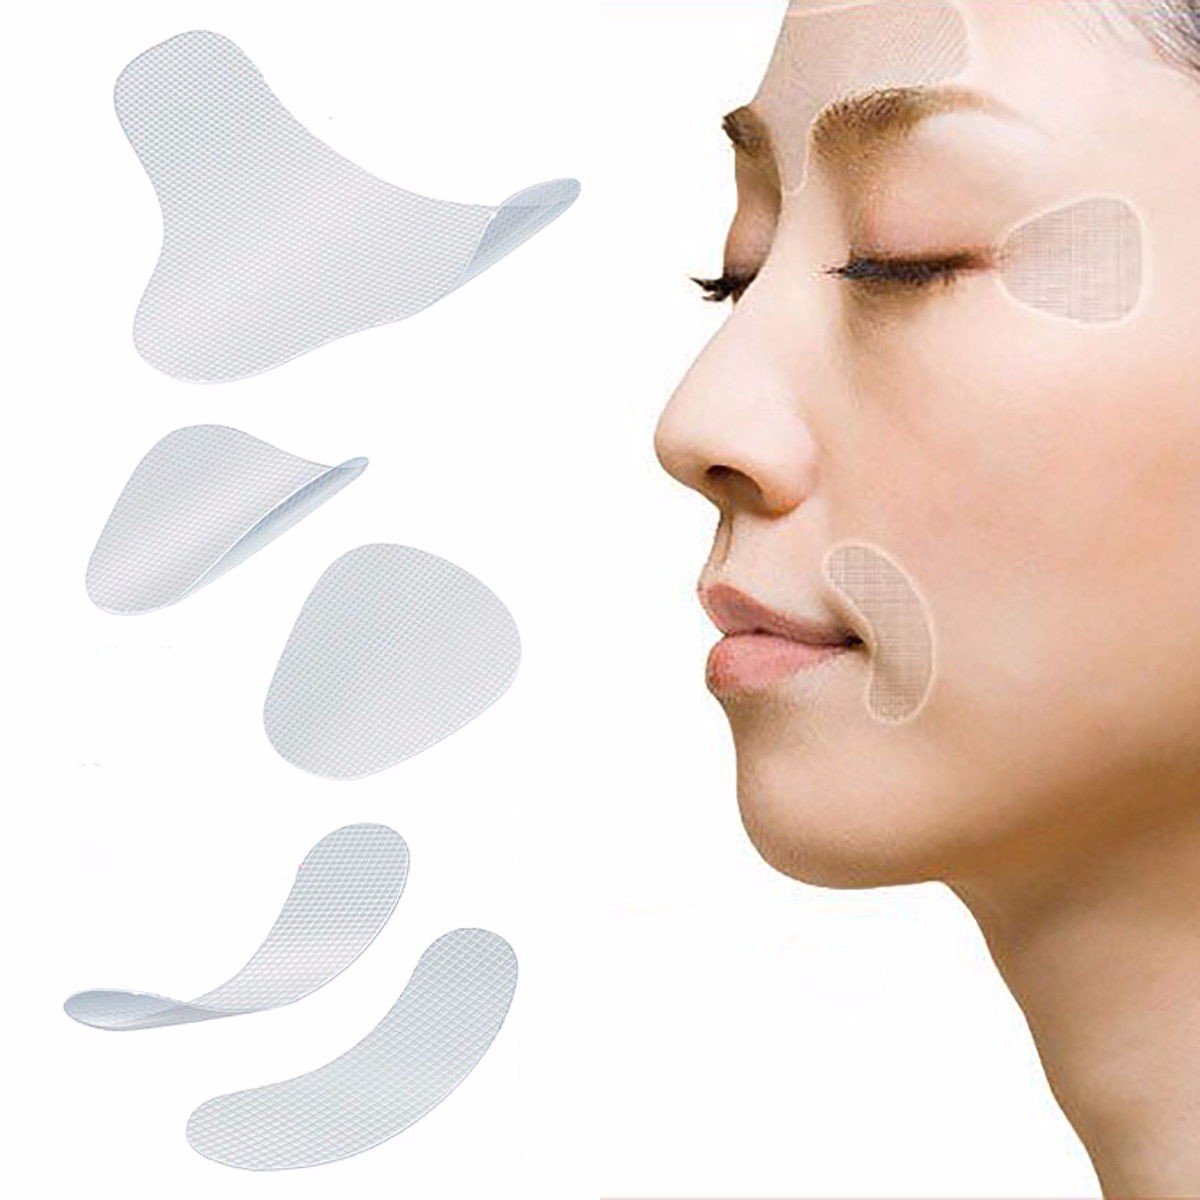 Anti Wrinkle Eye Face Mask Reusable Face Lifting Forehead Pad Invisible Anti-aging Eliminate And Prevent Face Wrinkle Skin Care